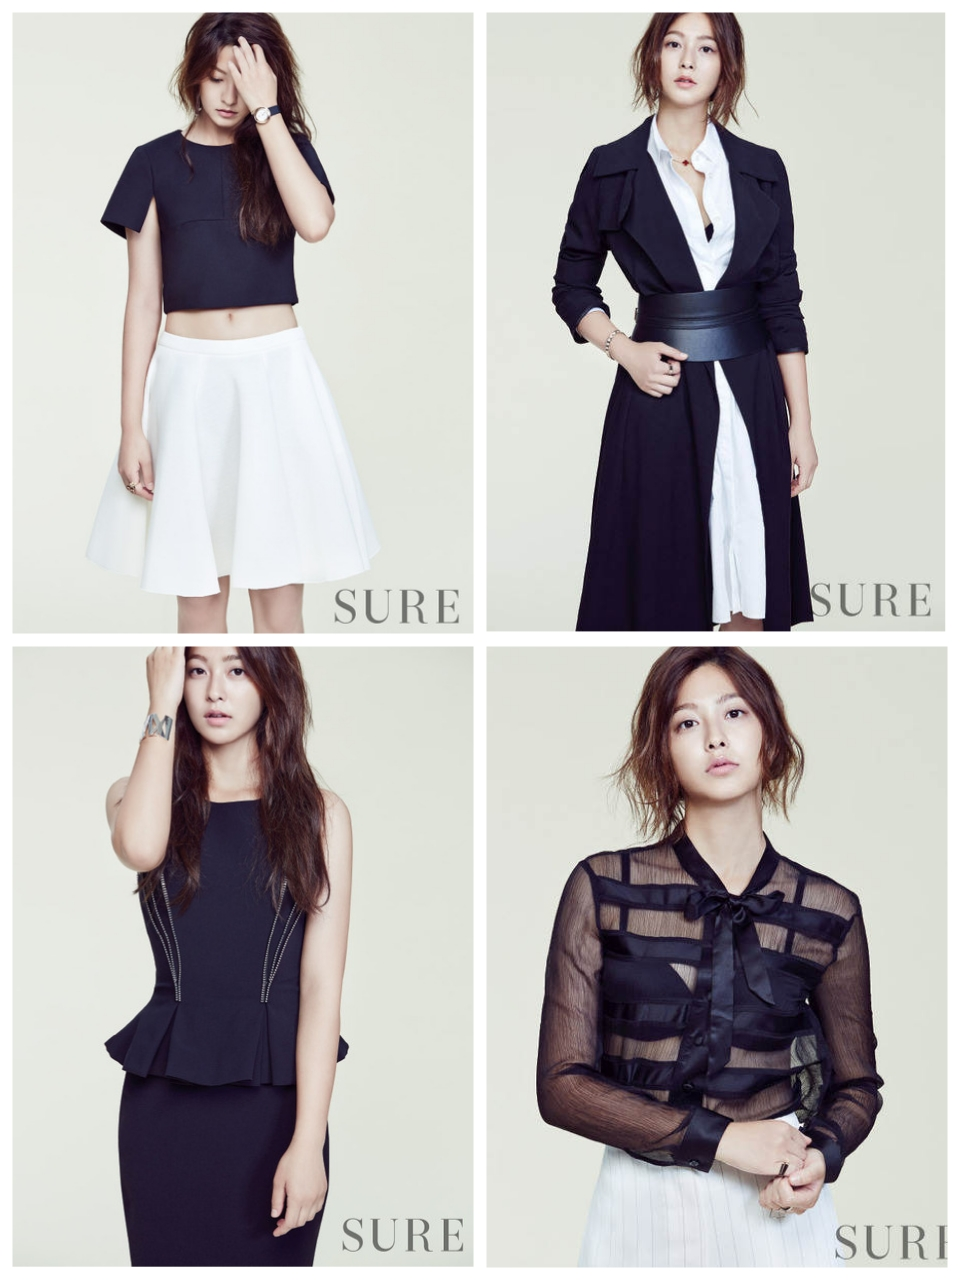 Park Se Yeoung Sure Sept (1)